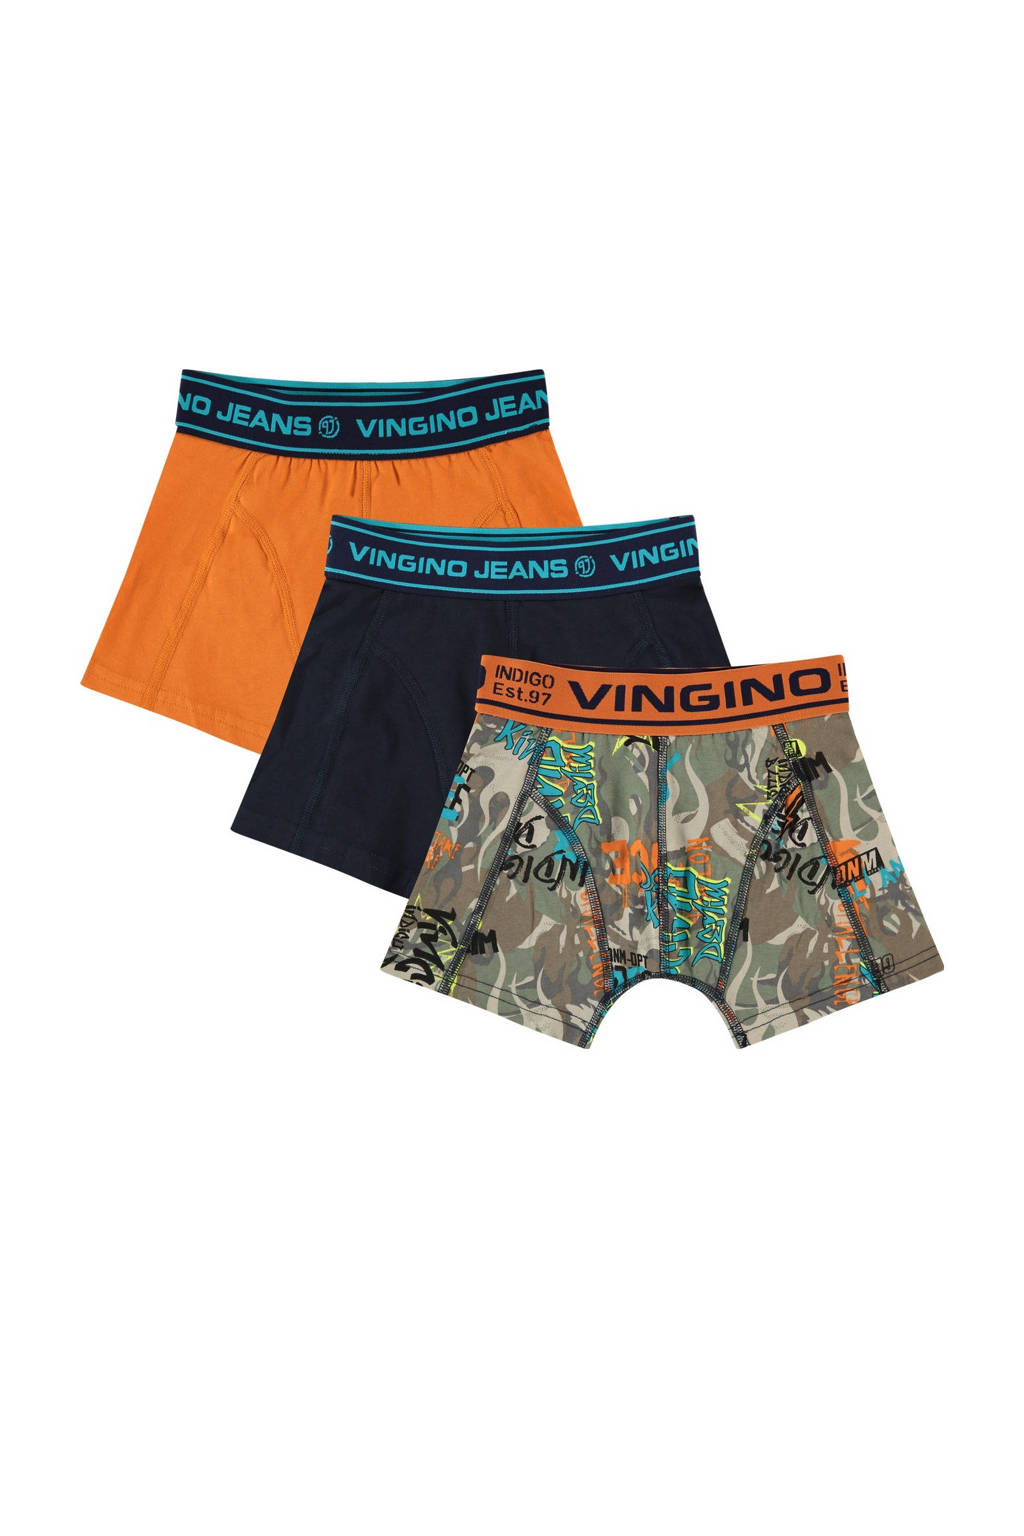 Vingino   boxershort Burning - set van 3 multicolor, oranje/multicolor